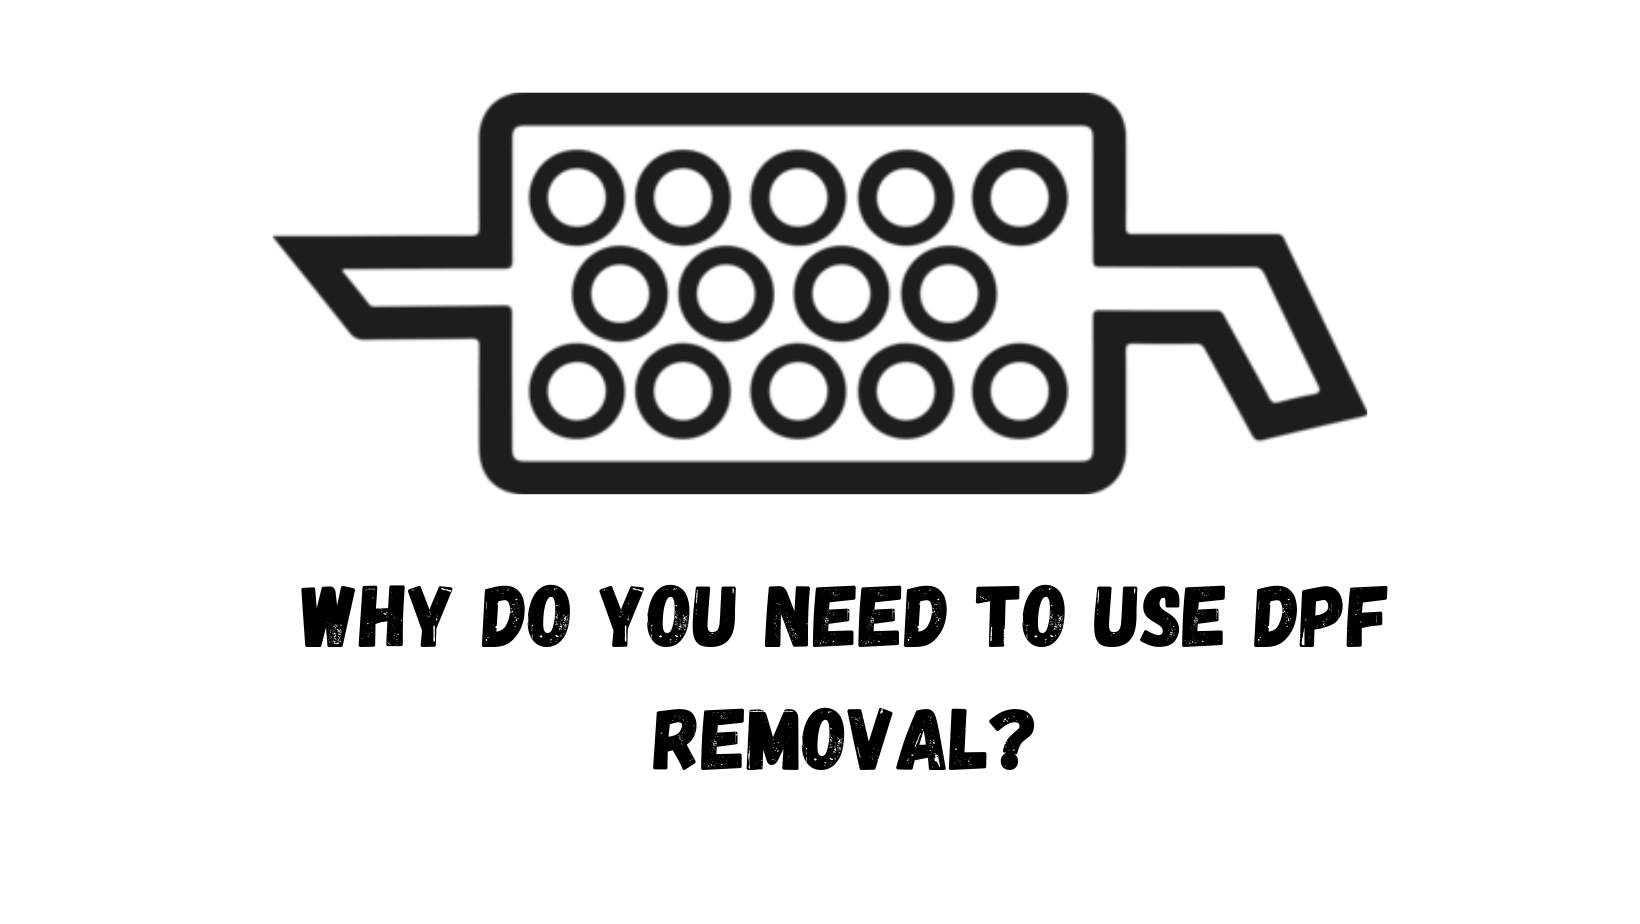 How to remove dpf filter for cleaning